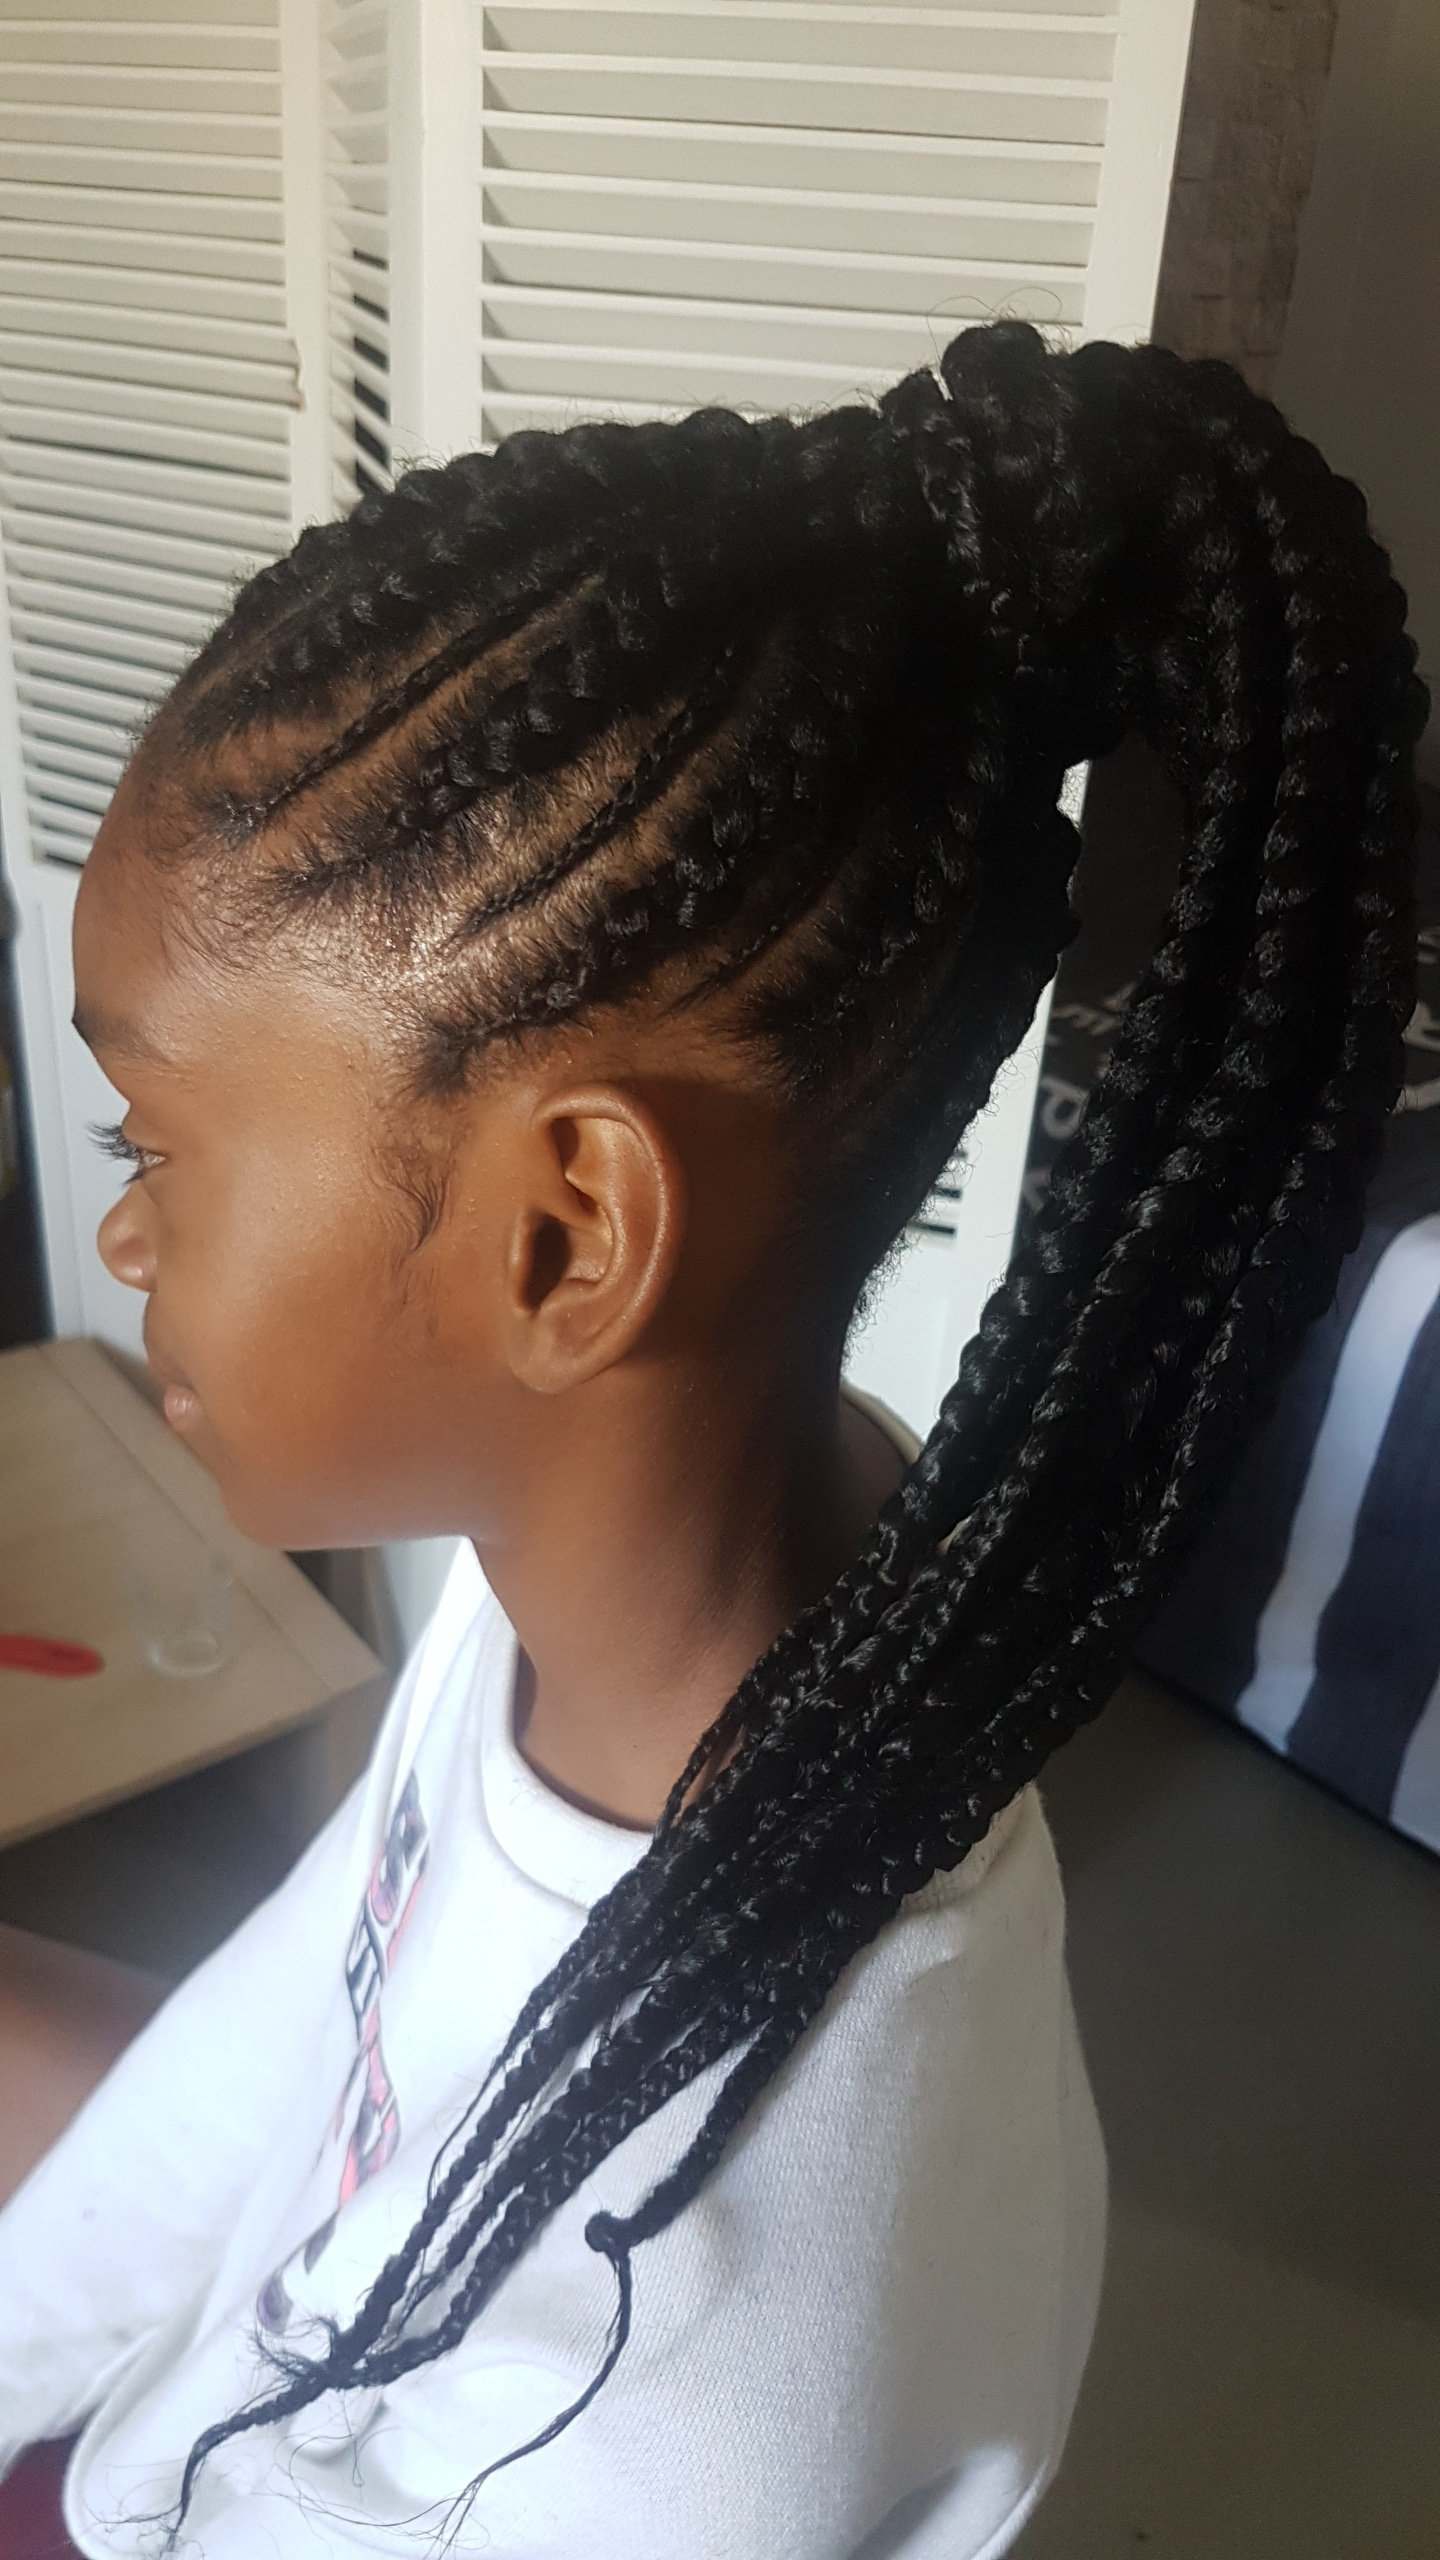 salon de coiffure afro tresse tresses box braids crochet braids vanilles tissages paris 75 77 78 91 92 93 94 95 MYLLATJE